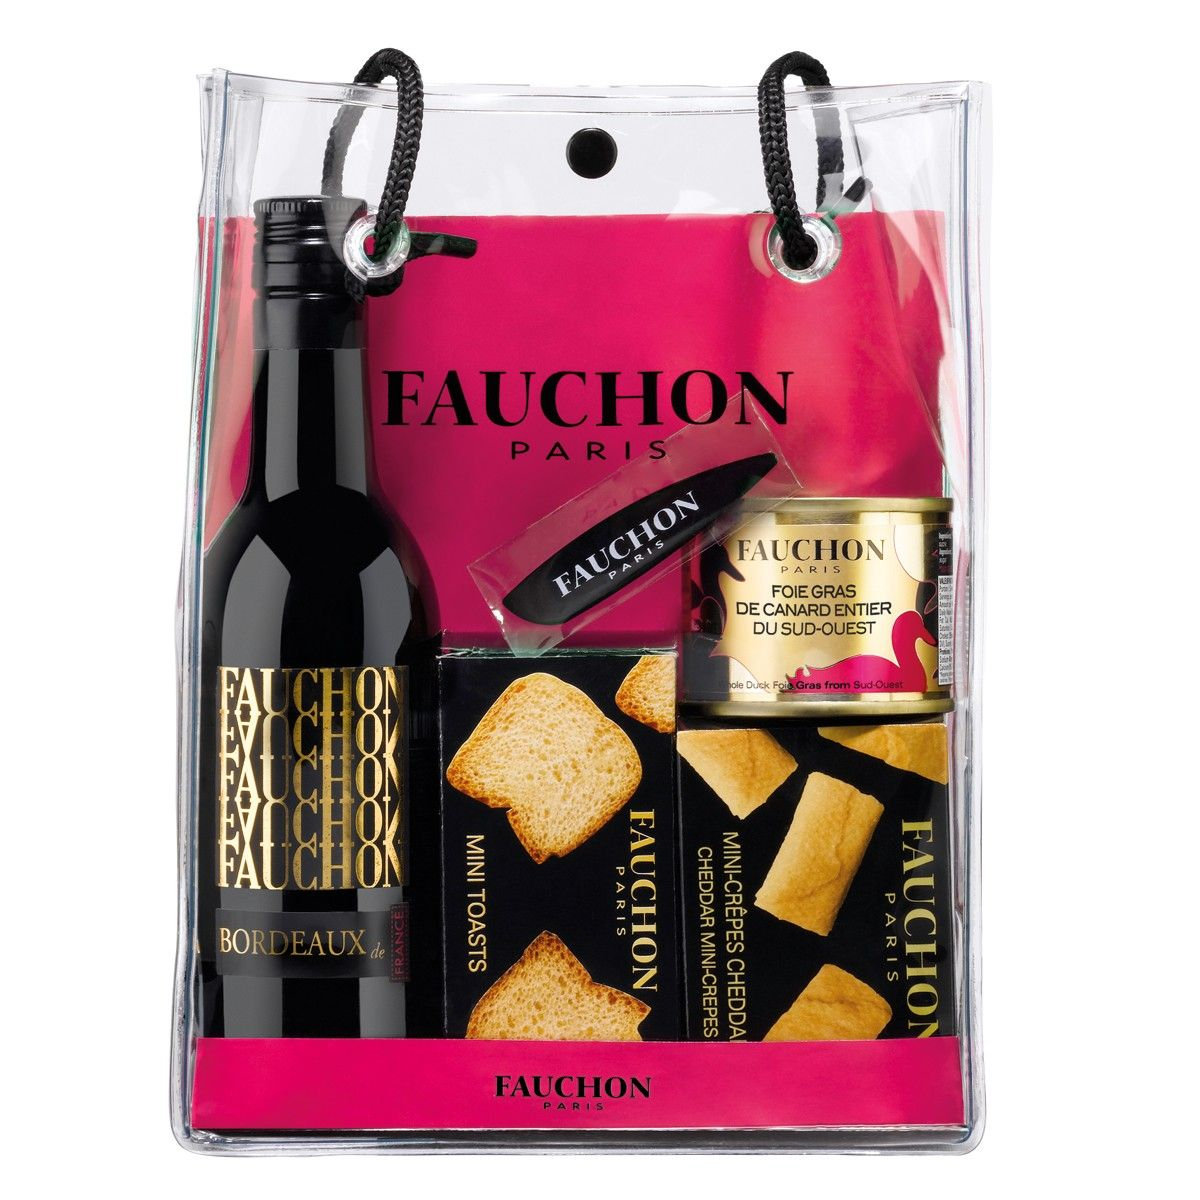 """<p style=""""text-align: justify;"""">FAUCHON invites you to discover a chic and tasty gift bag containing the must have Mini-crepes with Cheddar cheese filling, a block of duck Foie Gras complete with mini-toasts and a spatula.</p><br /> <p style=""""text-align: justify;""""><em><em>You can accompany this giftpurse with a bottle ofFAUCHON Bordeaux.</em></em></p><br /> <p style=""""text-align: justify;""""><em>Alcohol can damage your health, please drink reasonably.It is illegal for a ..."""